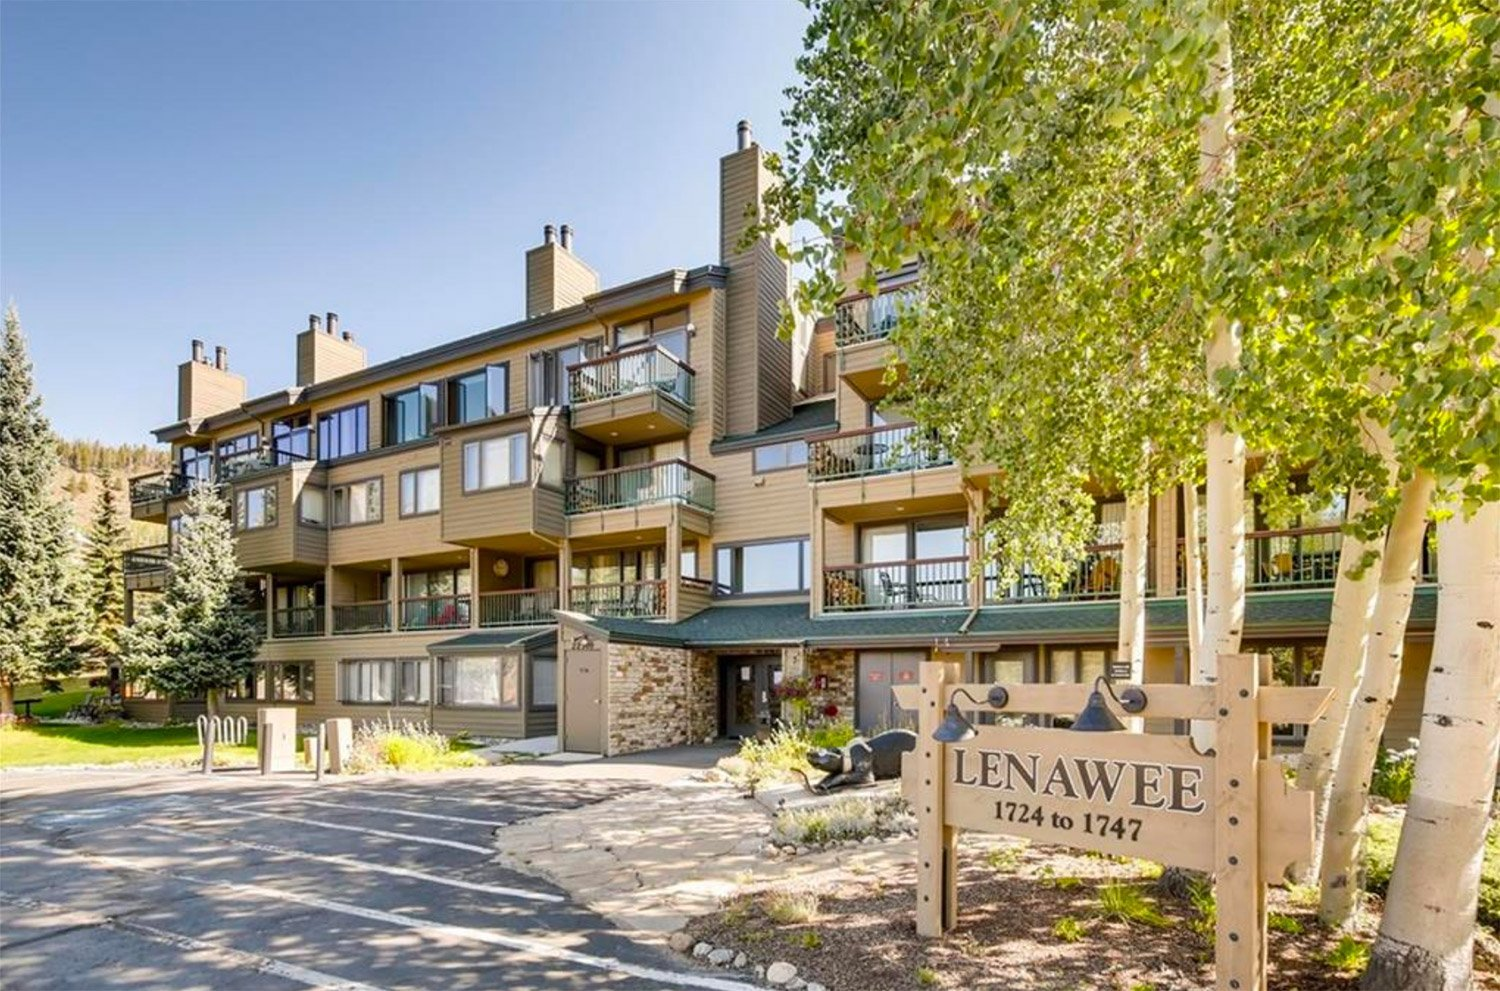 Lenawee Condos at Keystone Resort, front entrance